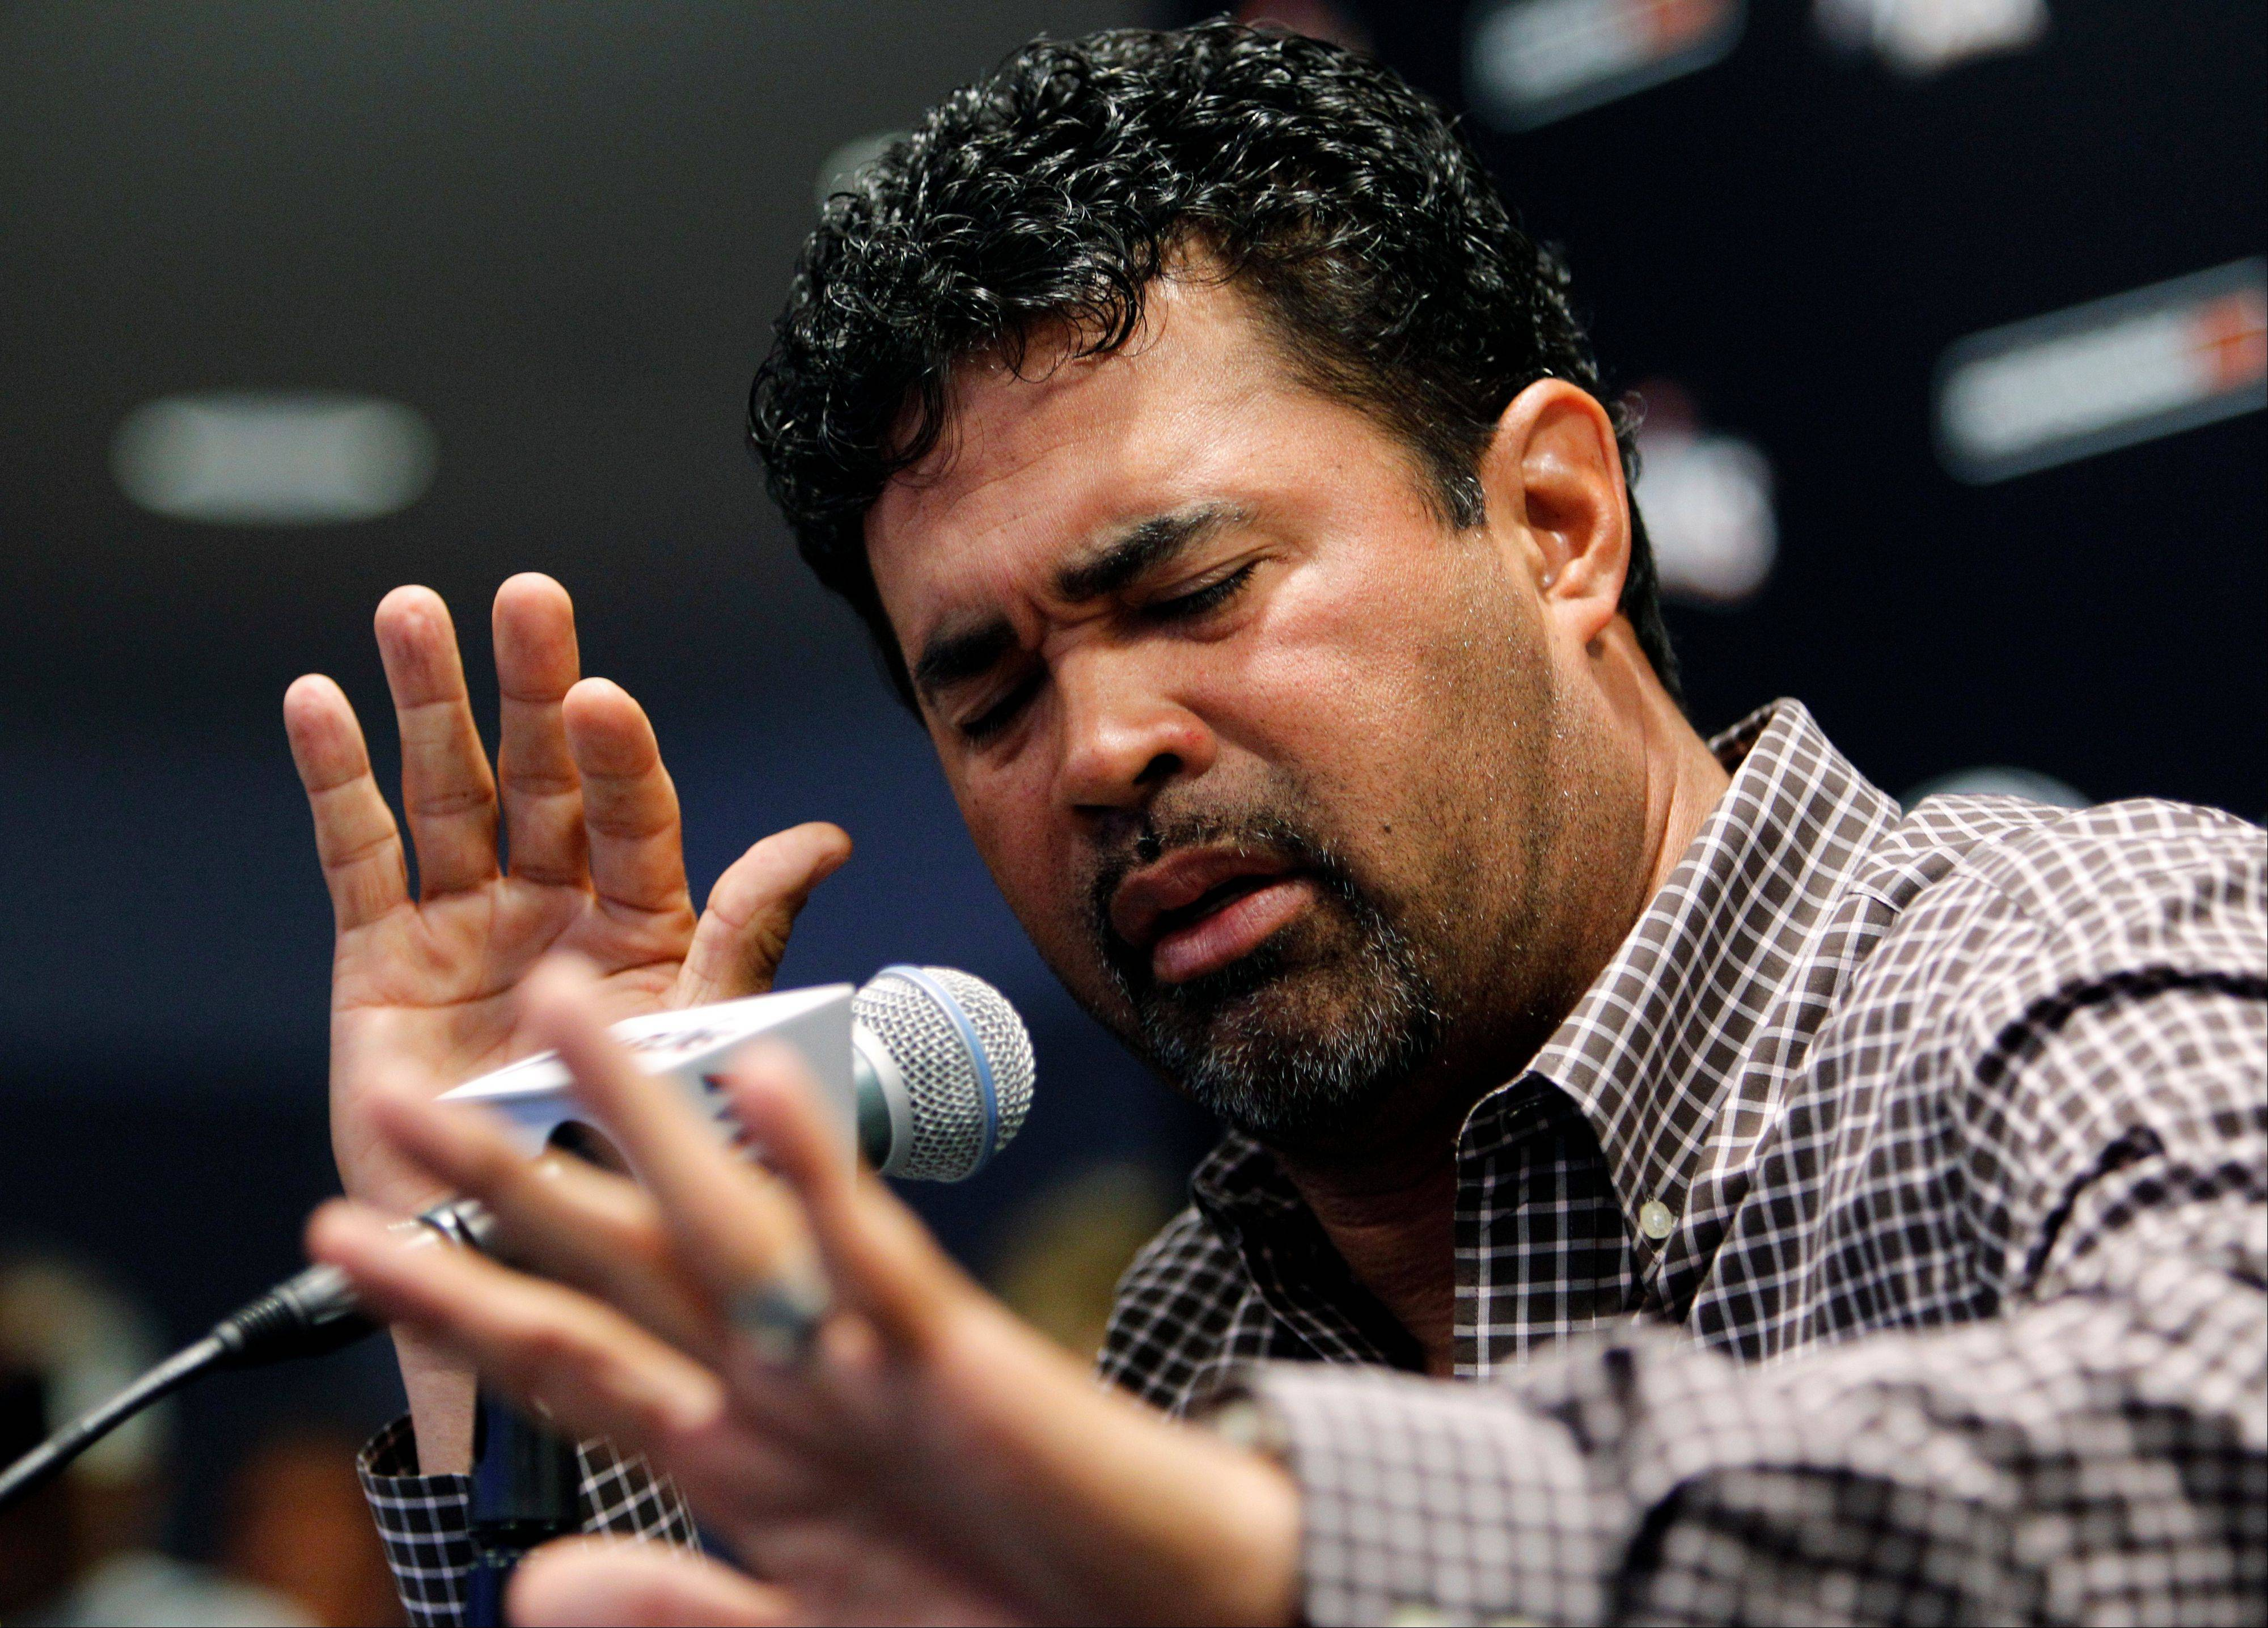 Miami Marlins manager Ozzie Guillen has been suspended for five games because of his comments about Fidel Castro. He has again apologized and says he accepts the punishment.